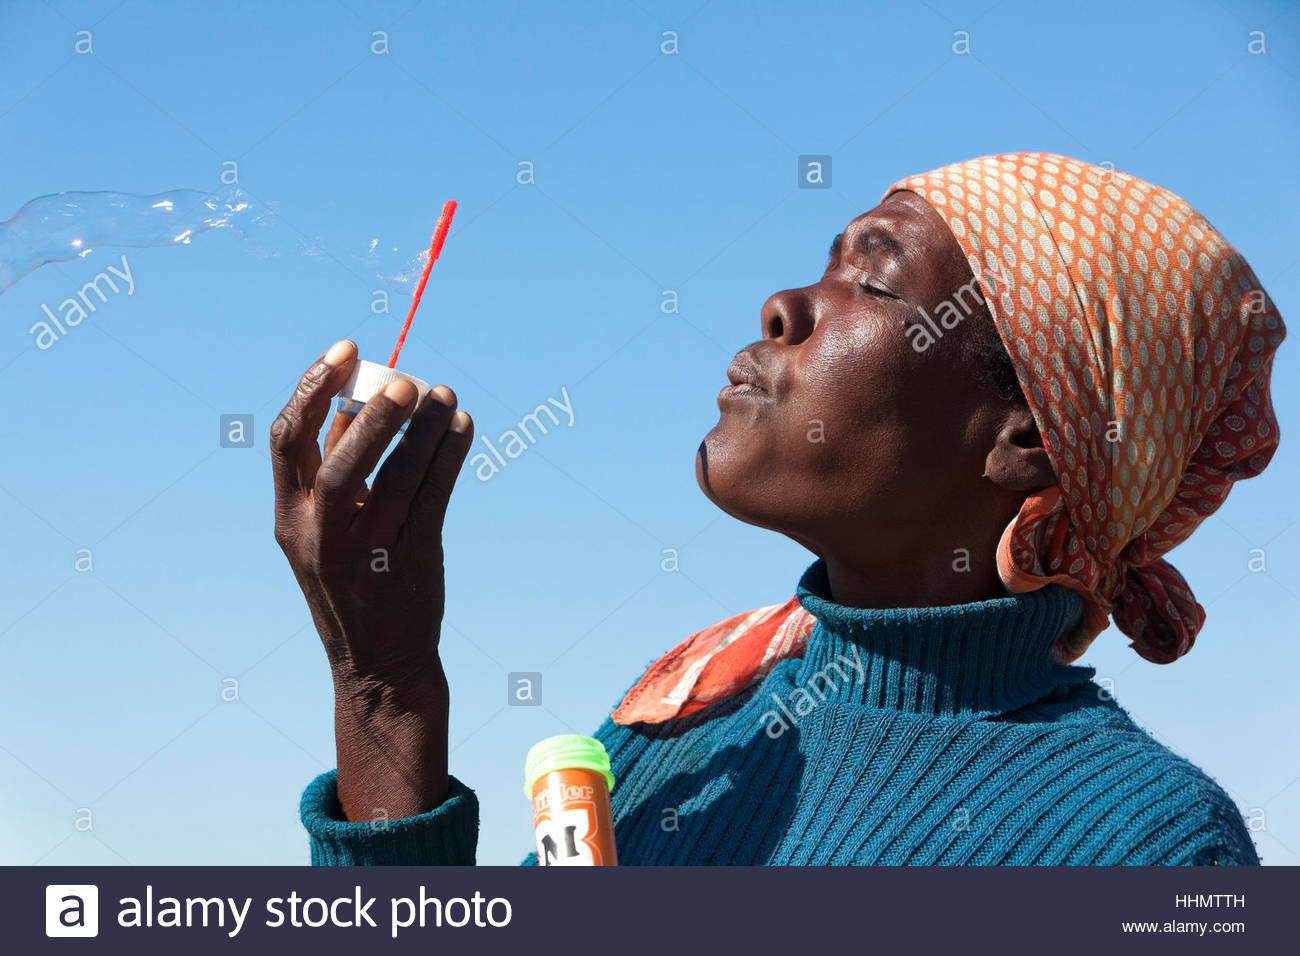 African woman blowing bubbles, Botswana - Stock Image